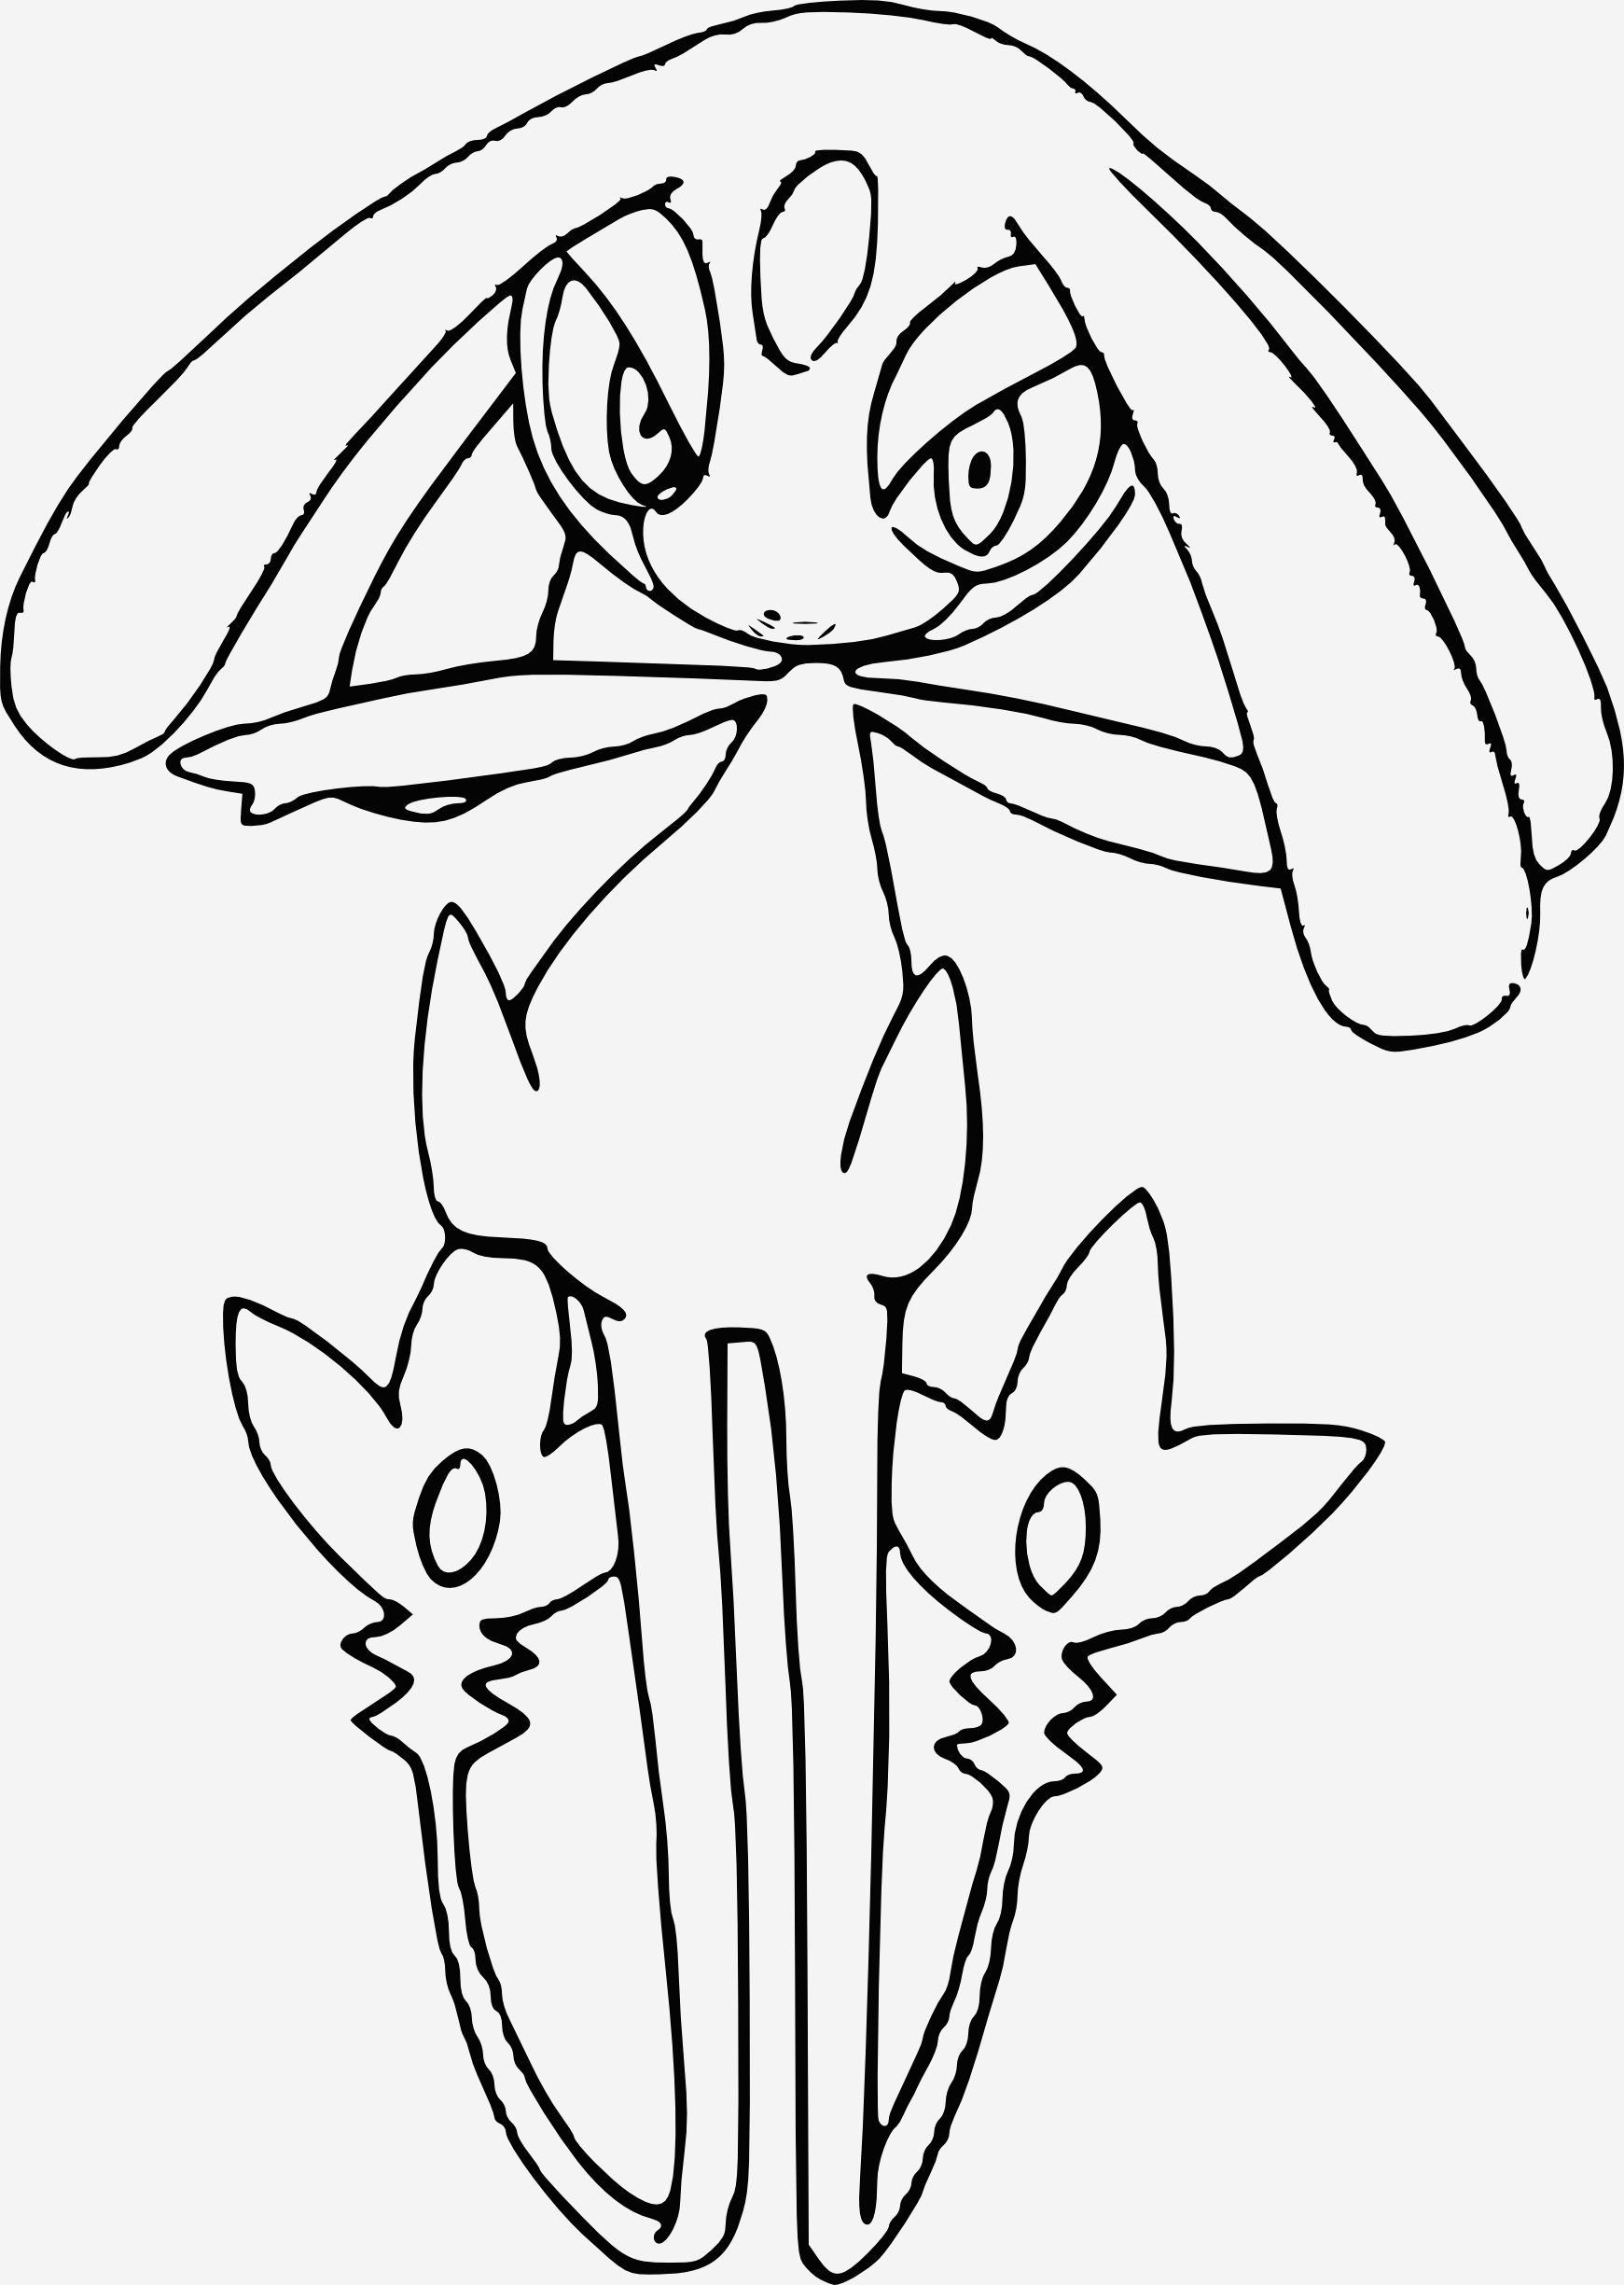 Coloriage à Imprimer Pokemon Legendaire Beautiful Coloriage Crefollet Pokemon Légendaire   Imprimer Of Coloriage à Imprimer Pokemon Legendaire